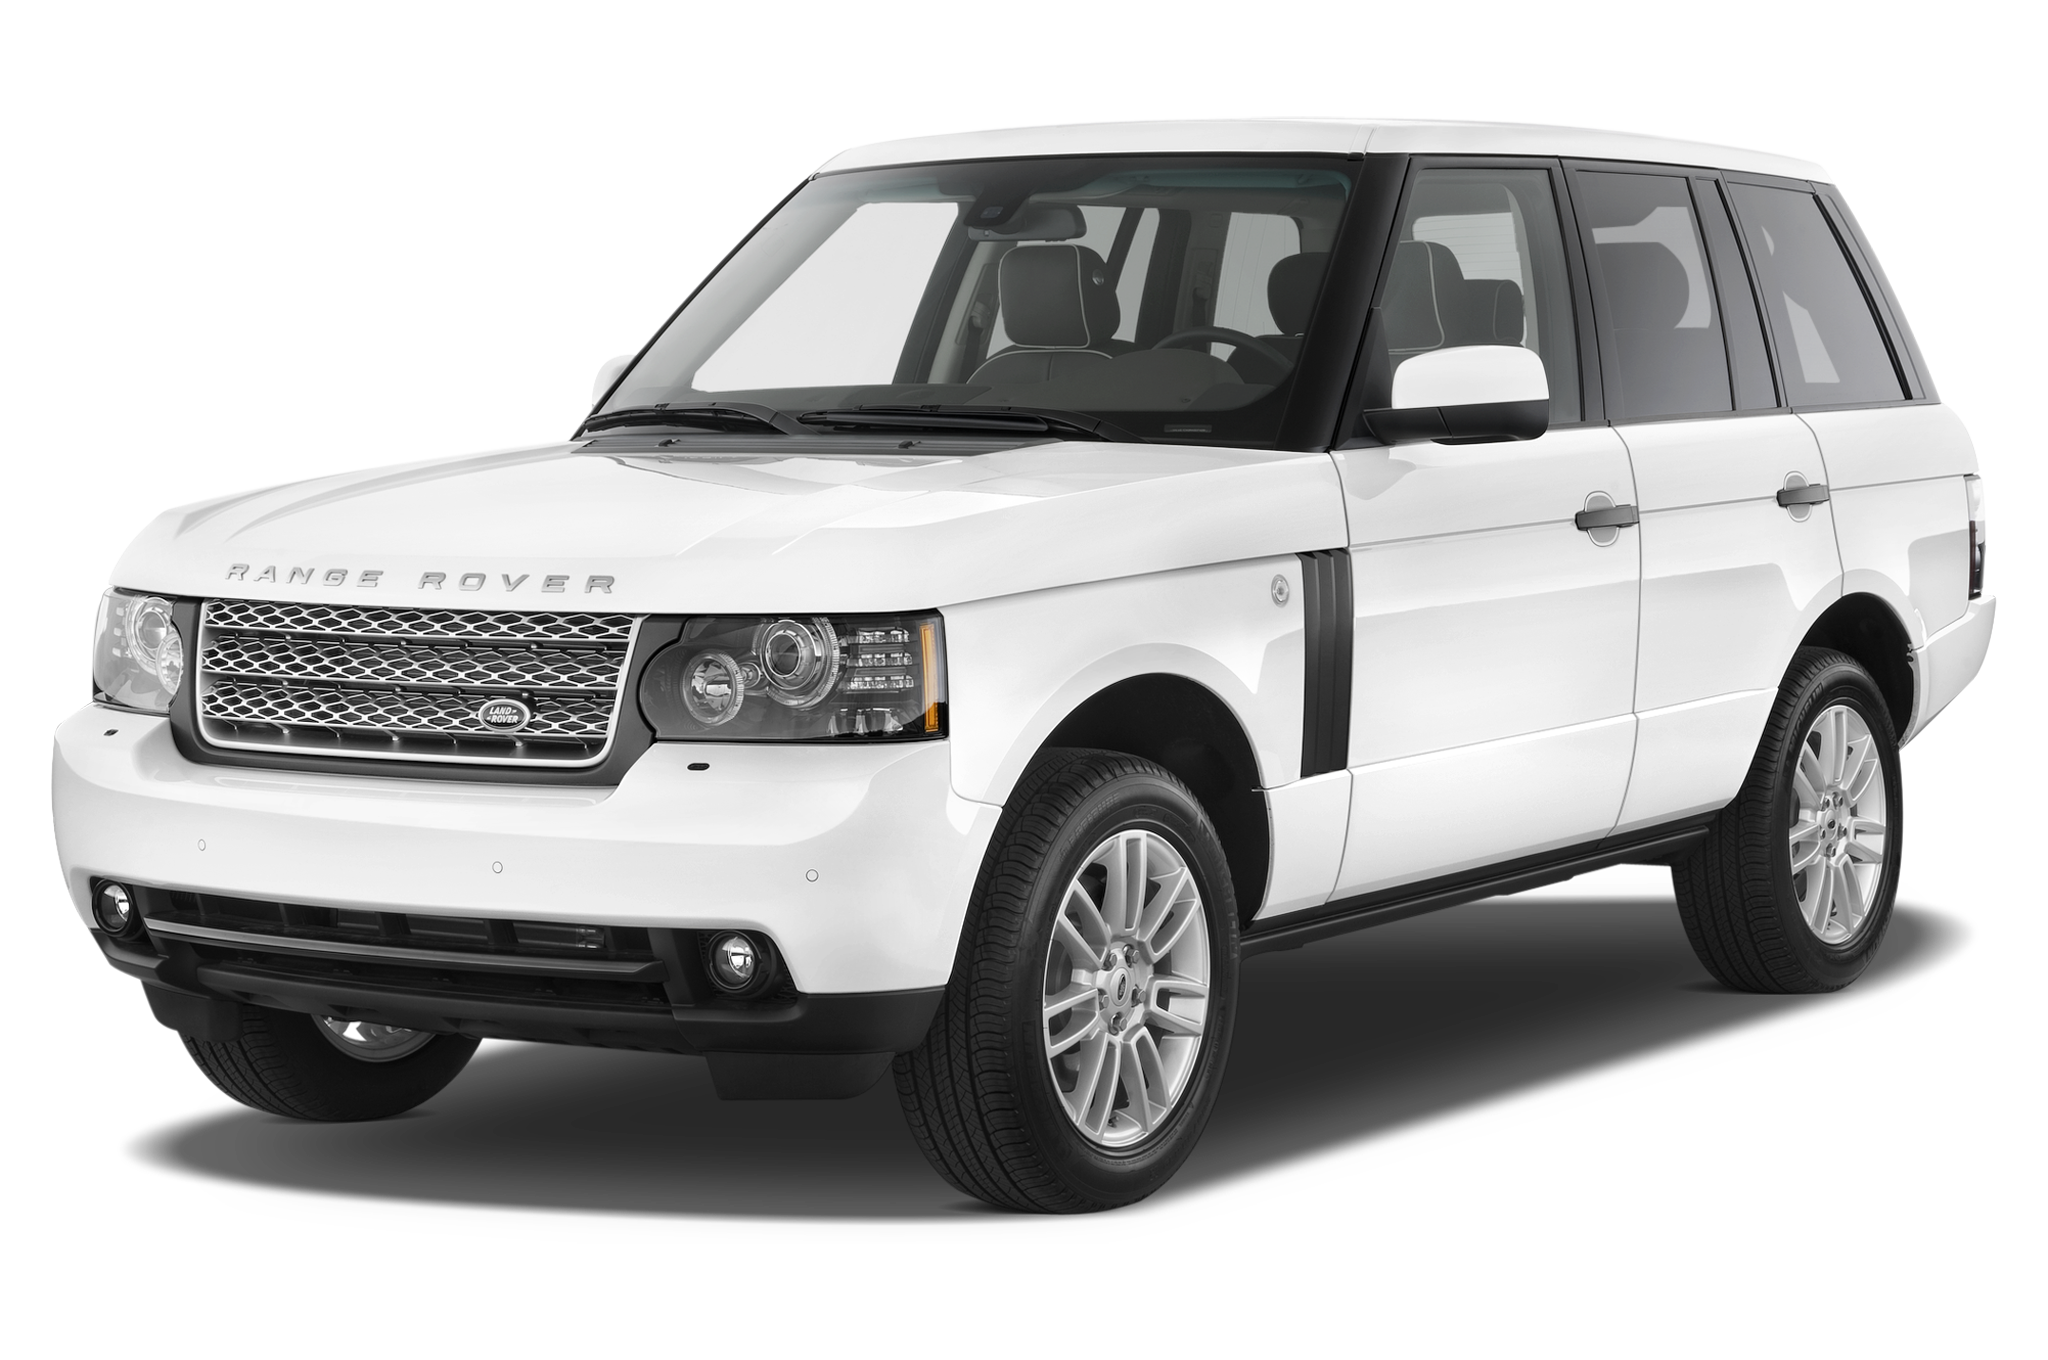 2010 land rover range rover sport land rover luxury suv review automobile magazine. Black Bedroom Furniture Sets. Home Design Ideas